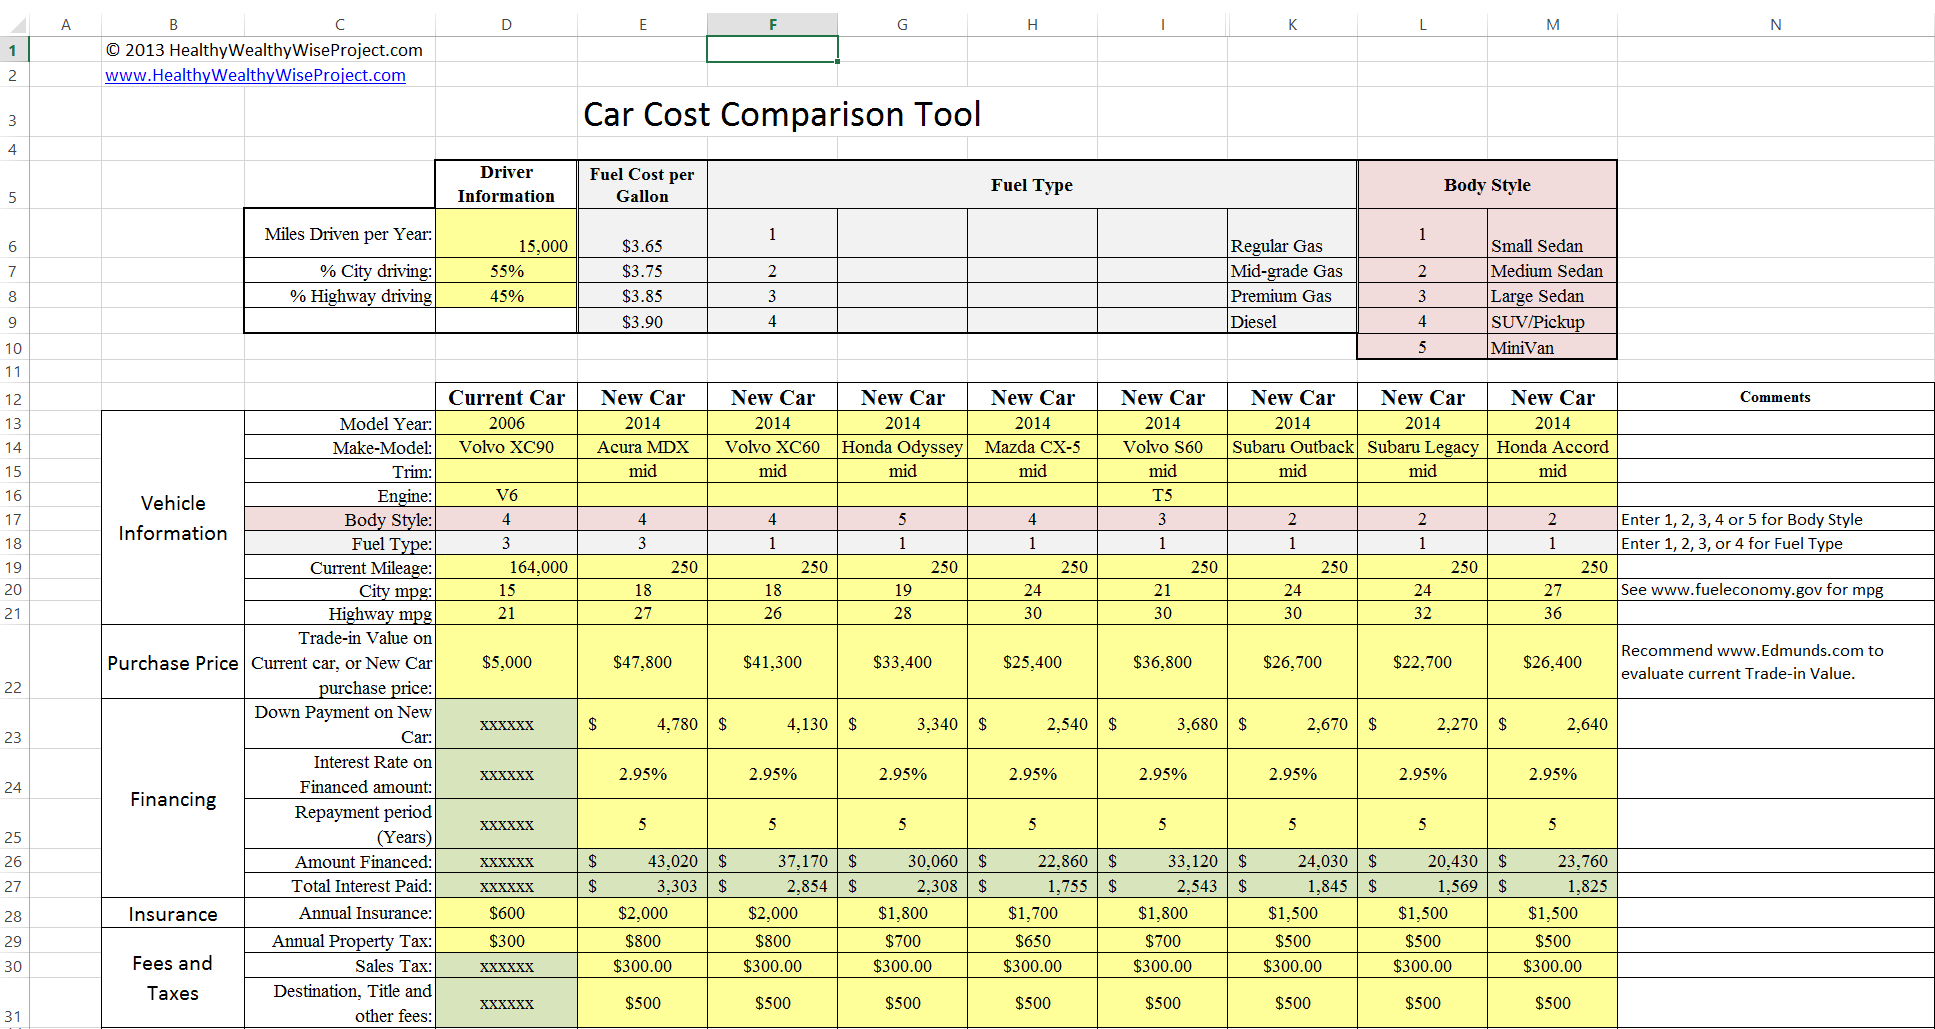 Car Cost Comparison Tool for Excel - HealthyWealthyWiseProject